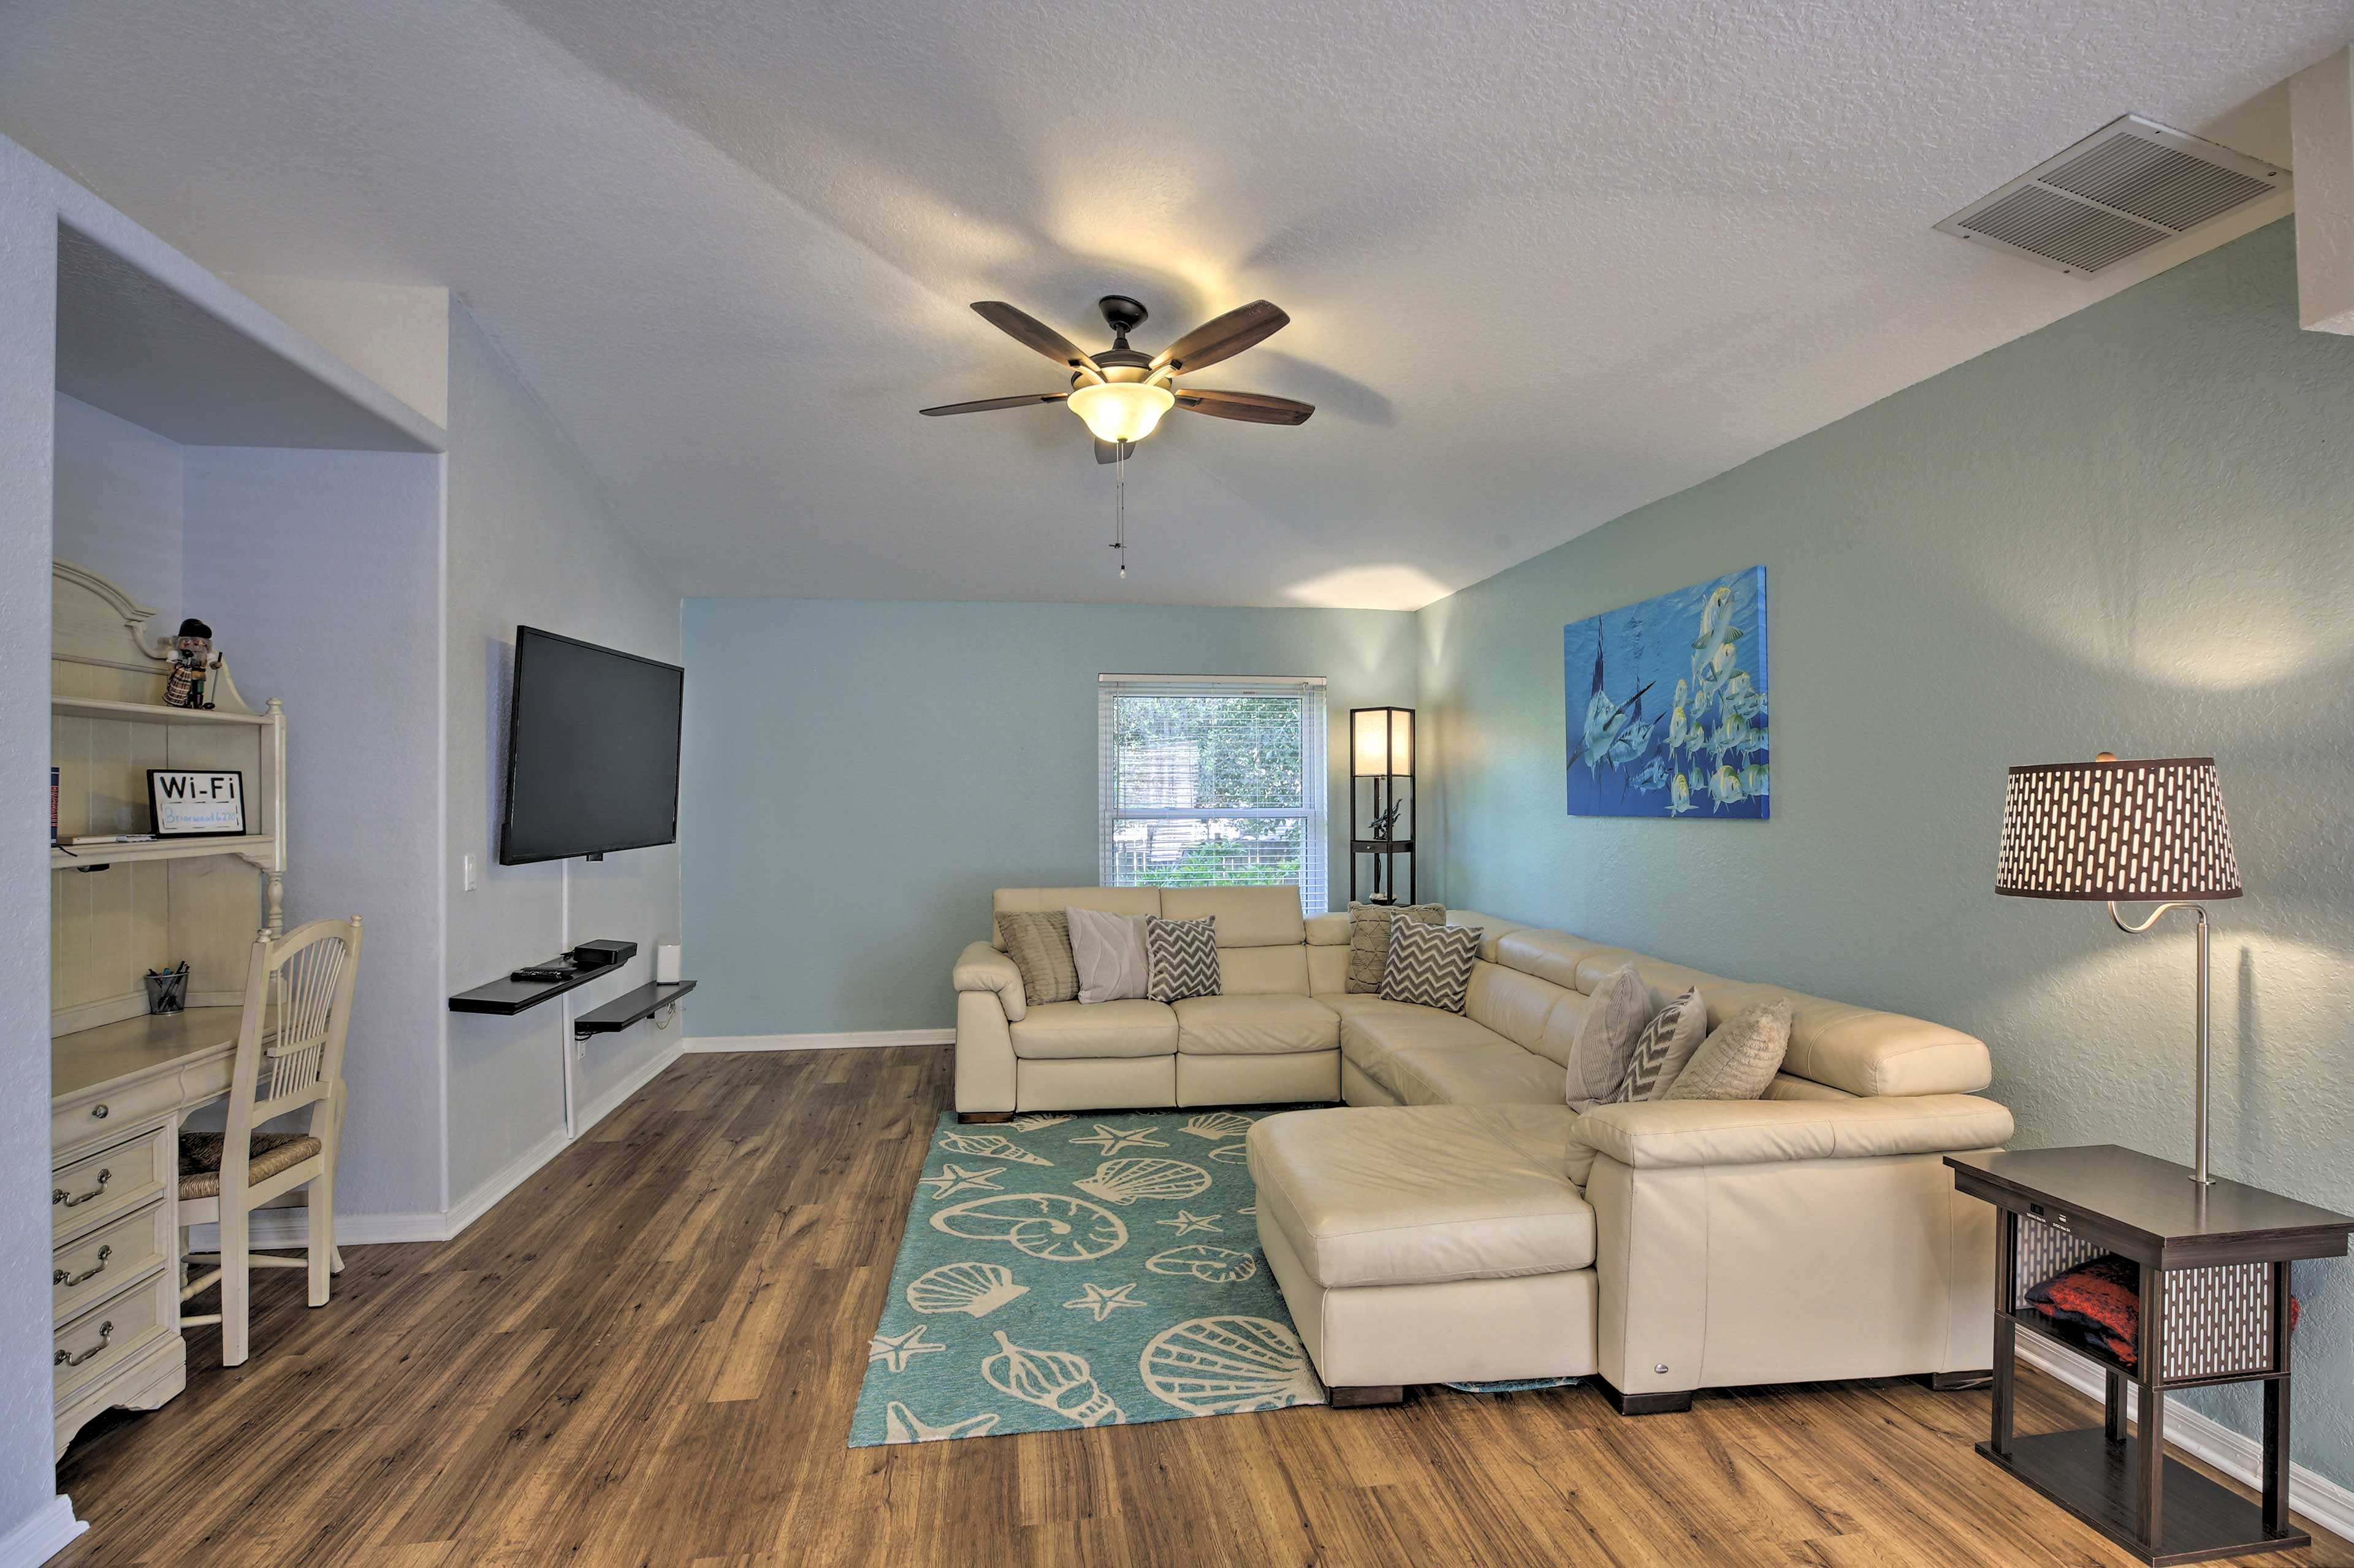 Living Room | Cable TV | Ceiling Fan